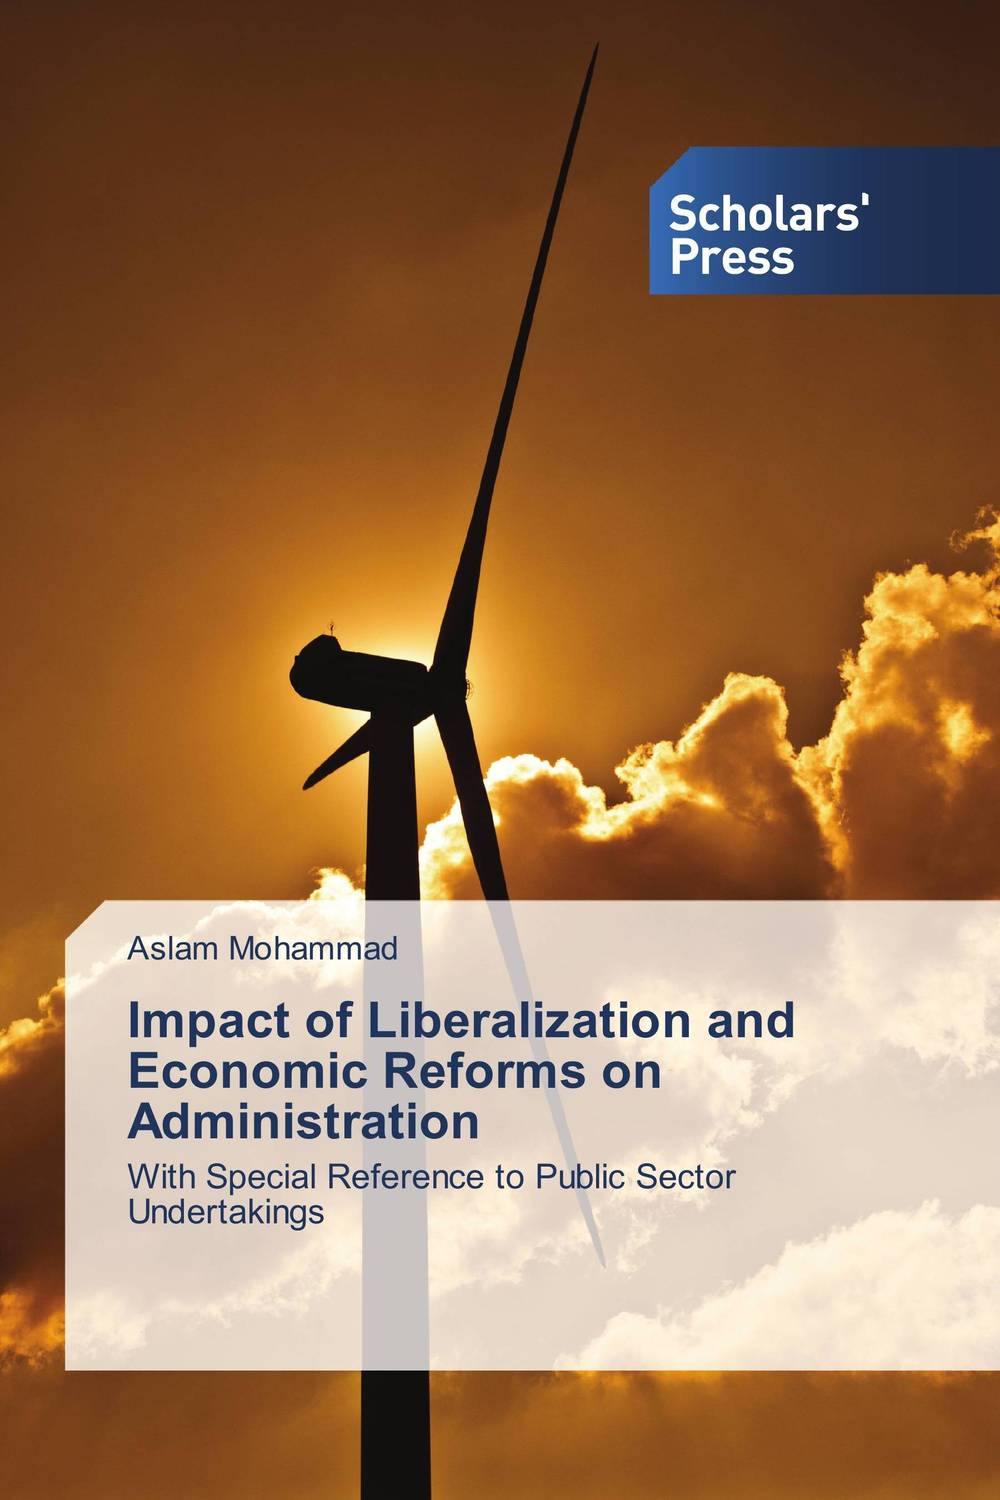 Impact of Liberalization and Economic Reforms on Administration economic methodology